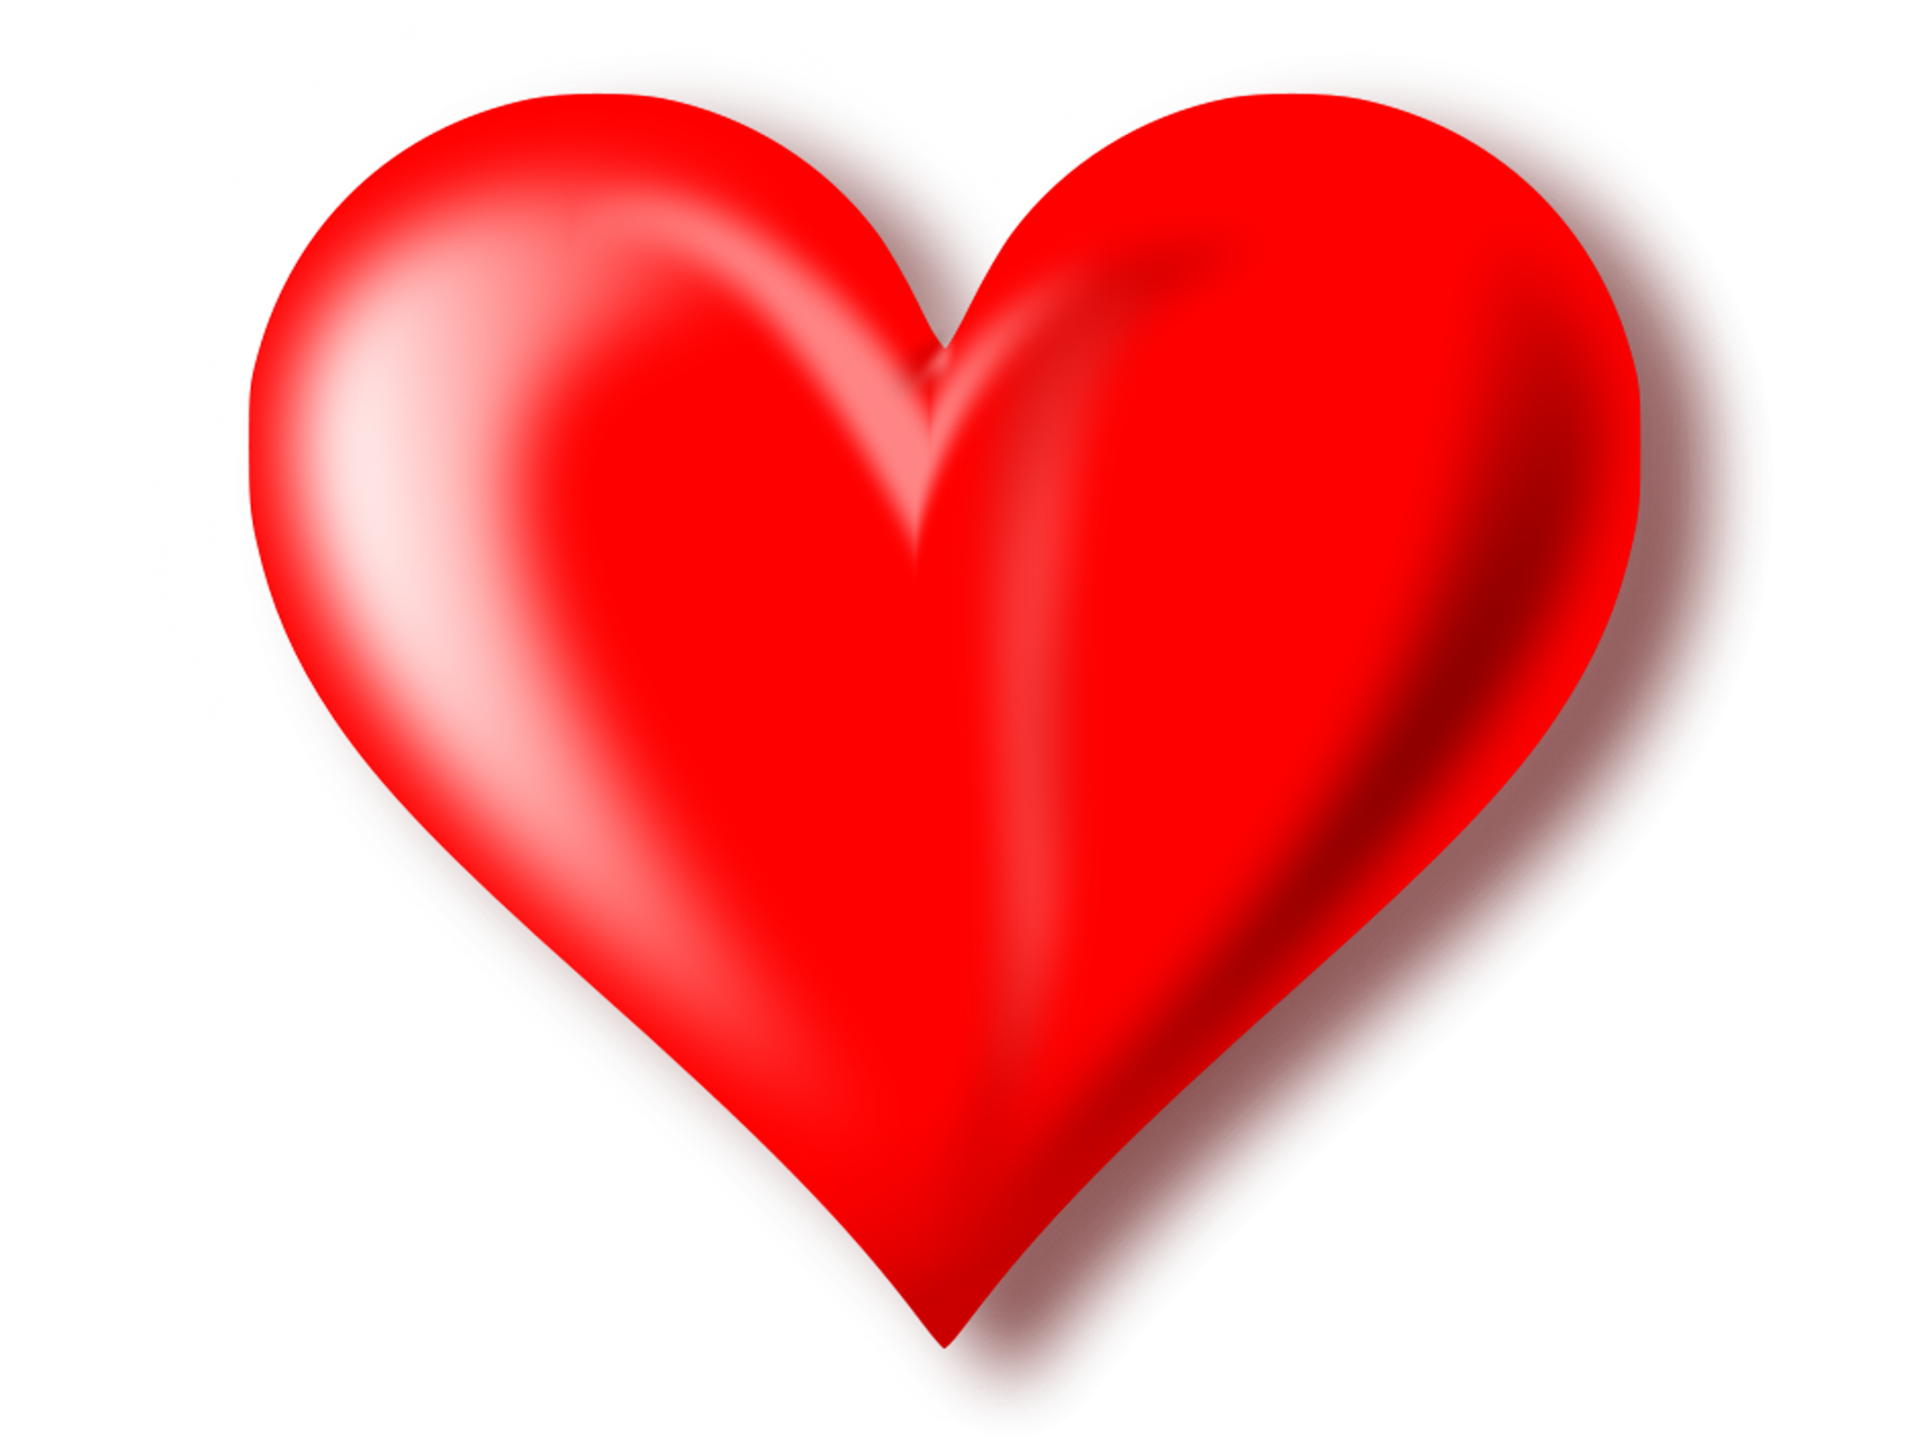 3D Red Heart Transparent Background - Heart PNG HD Transparent Background - PNG HD Heart